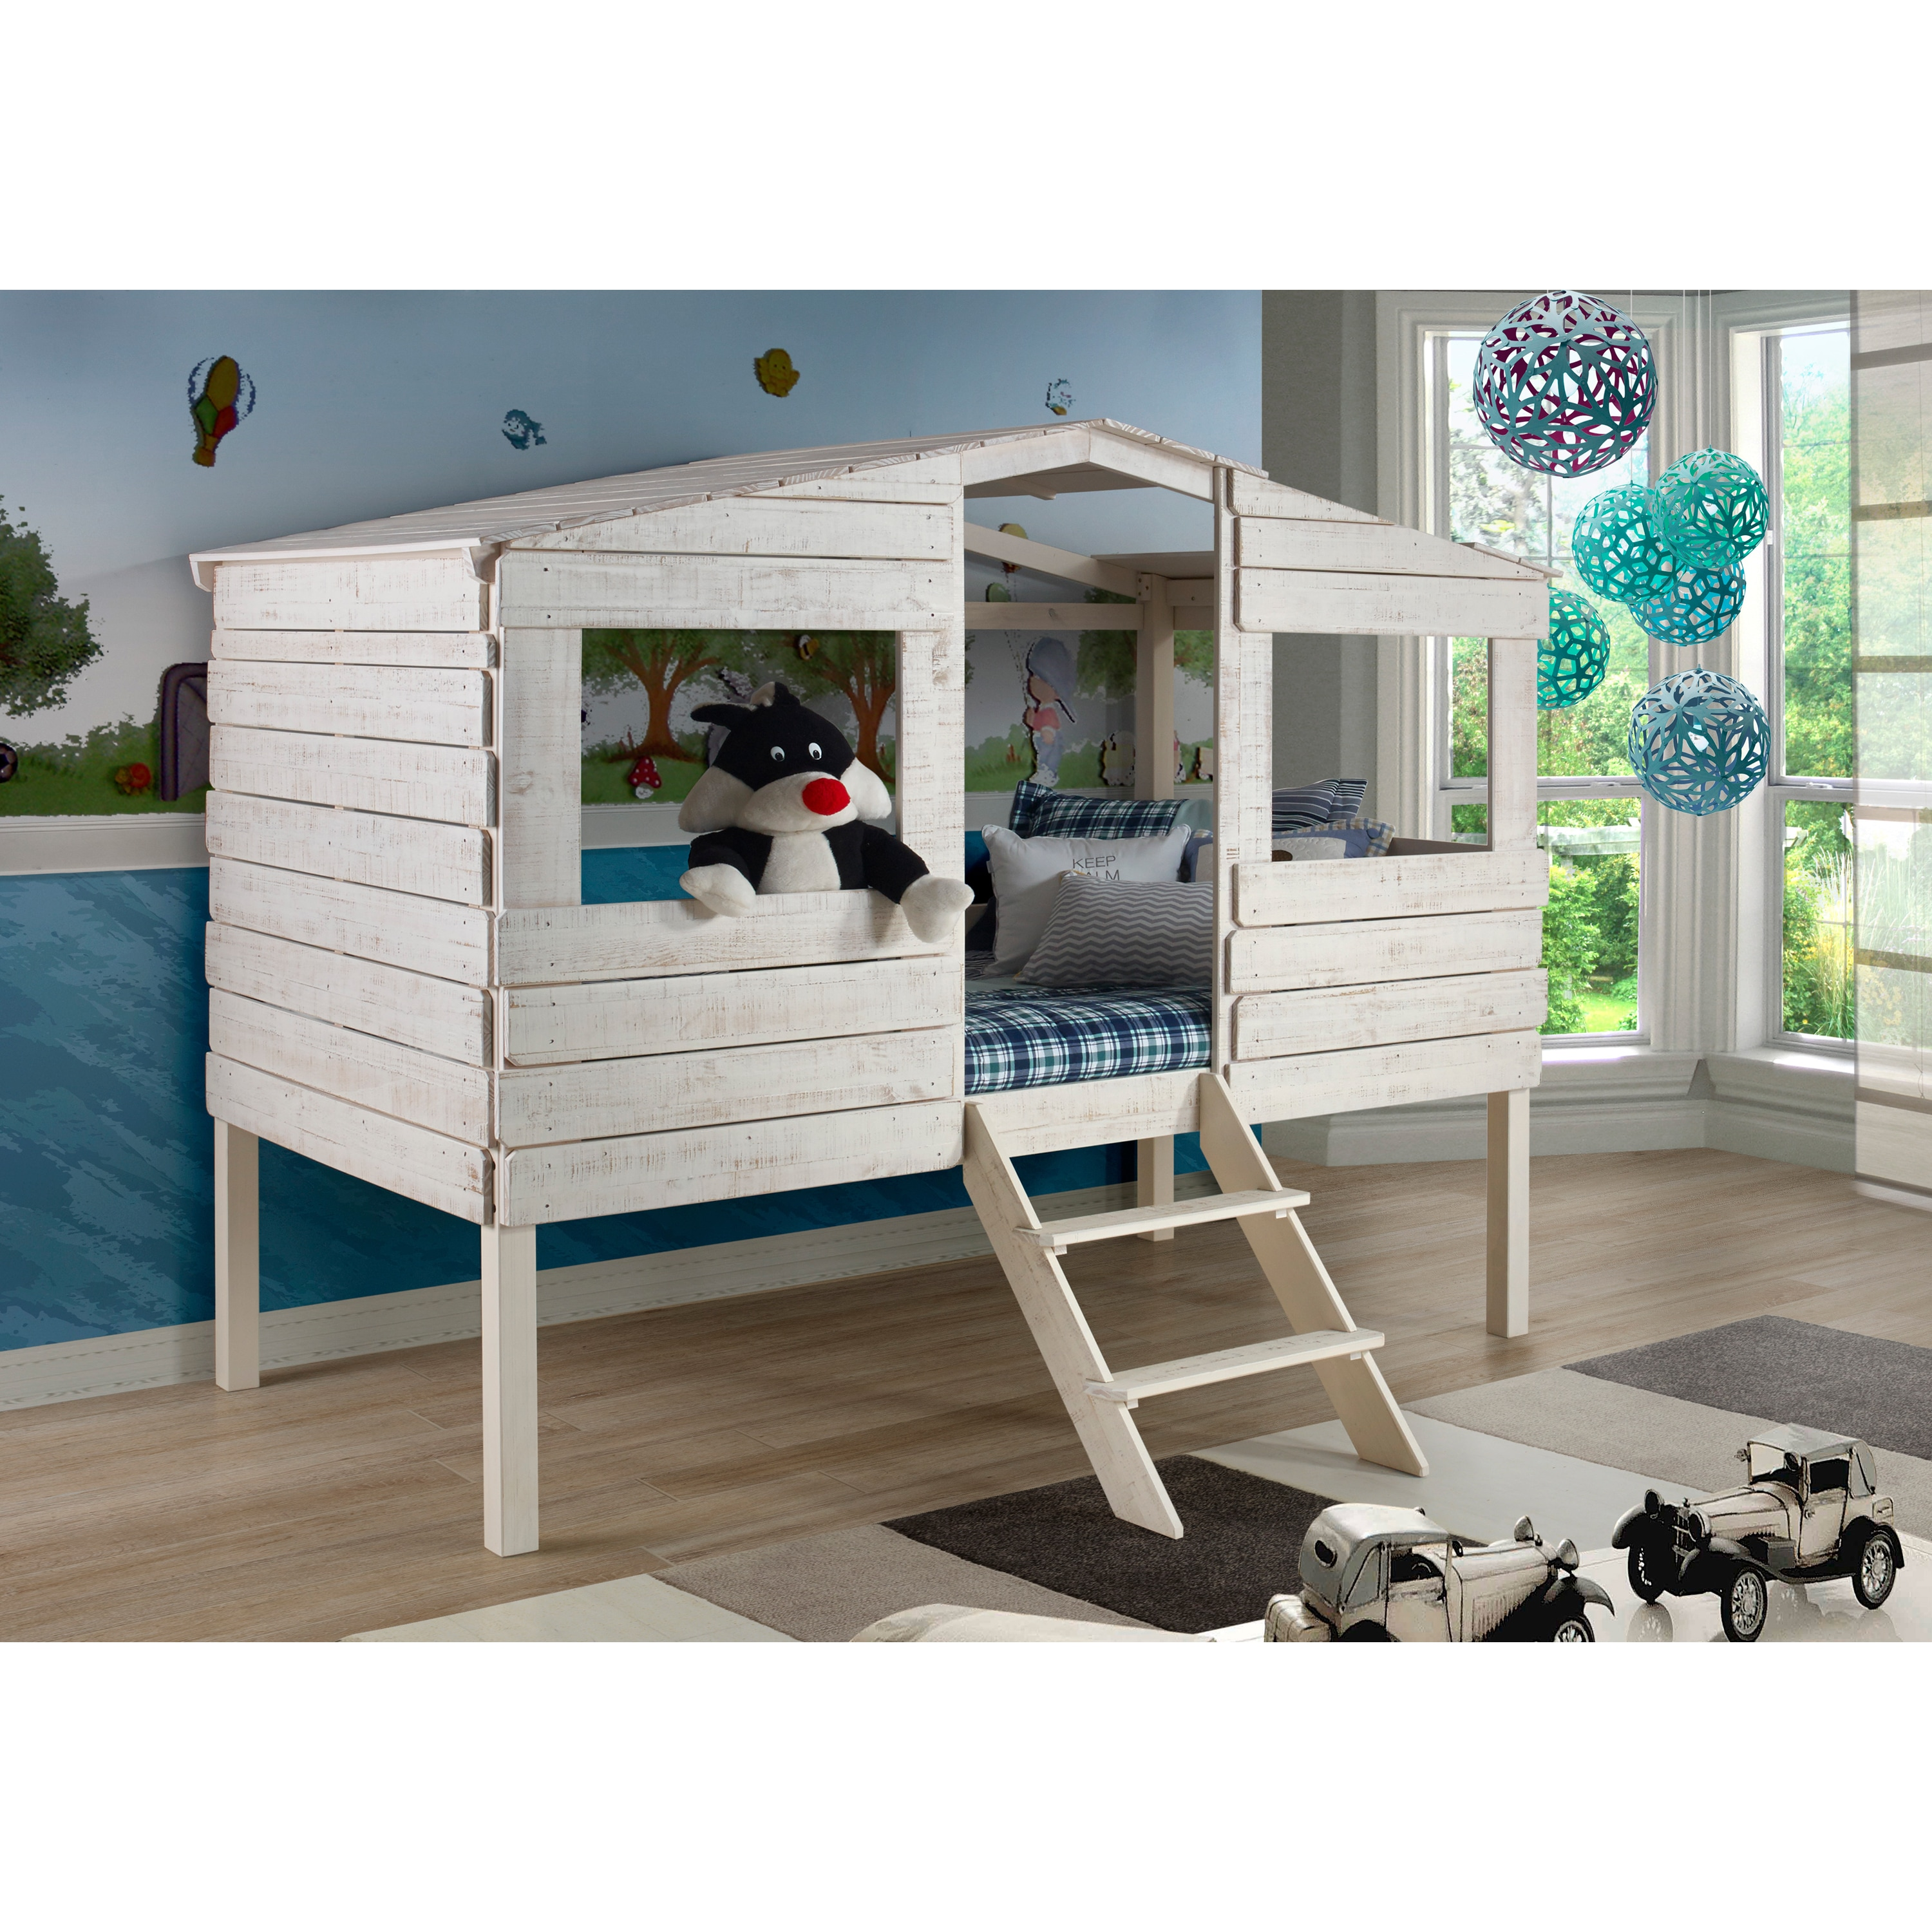 Shop Black Friday Deals On Donco Kids Rustic Sand Twin Tree House Loft Bed Overstock 11098543